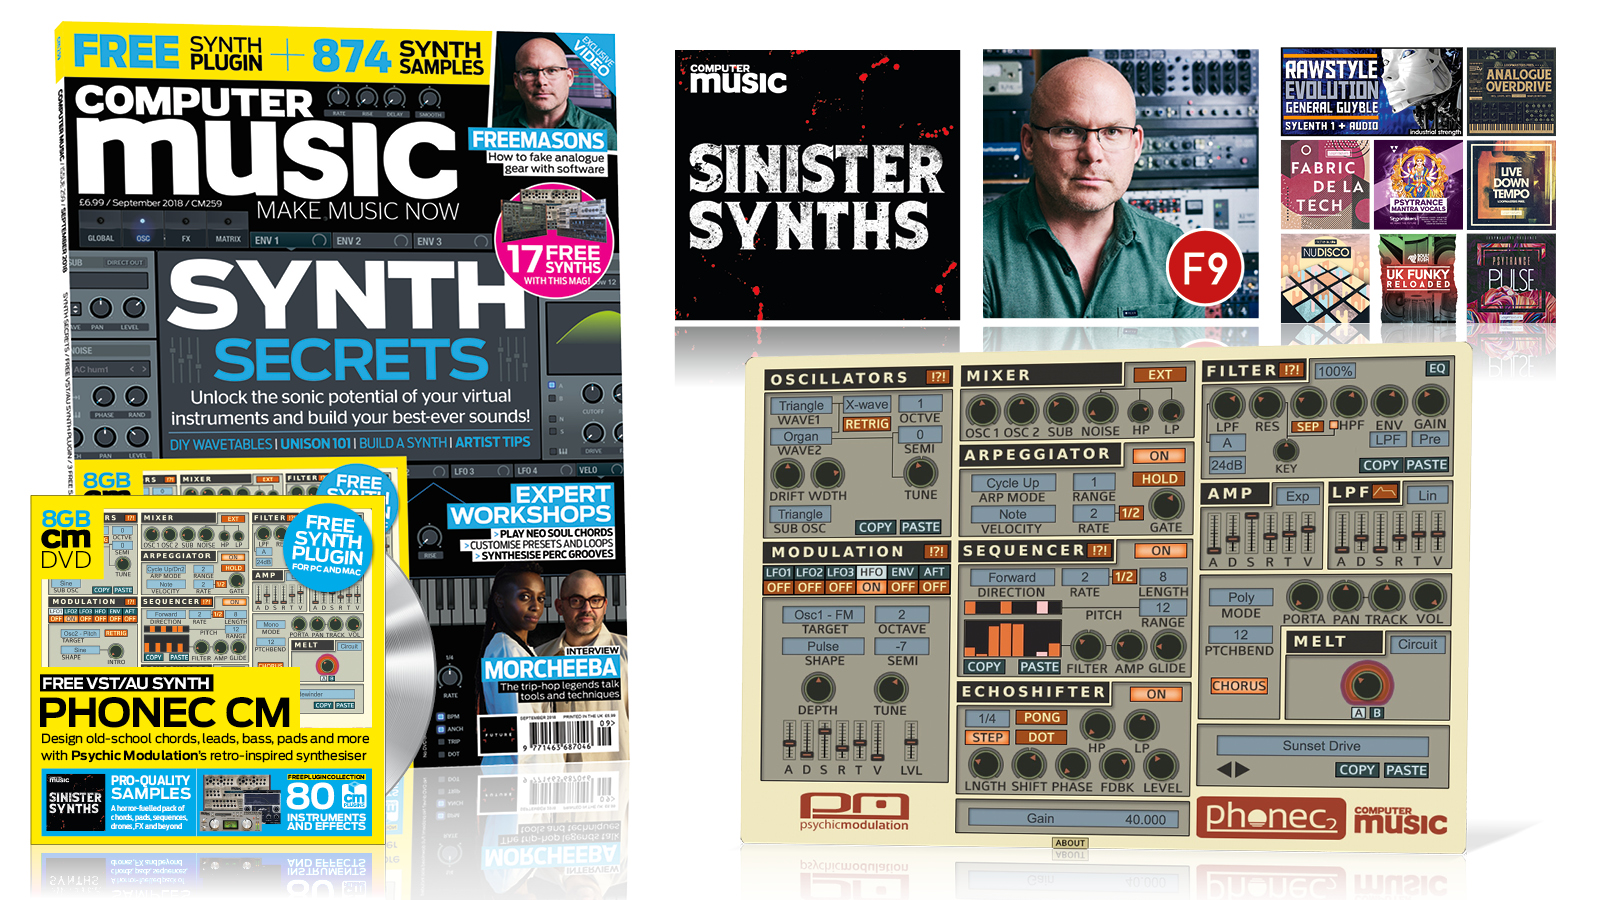 SYNTH SECRETS – Computer Music issue 259 is out now! | MusicRadar